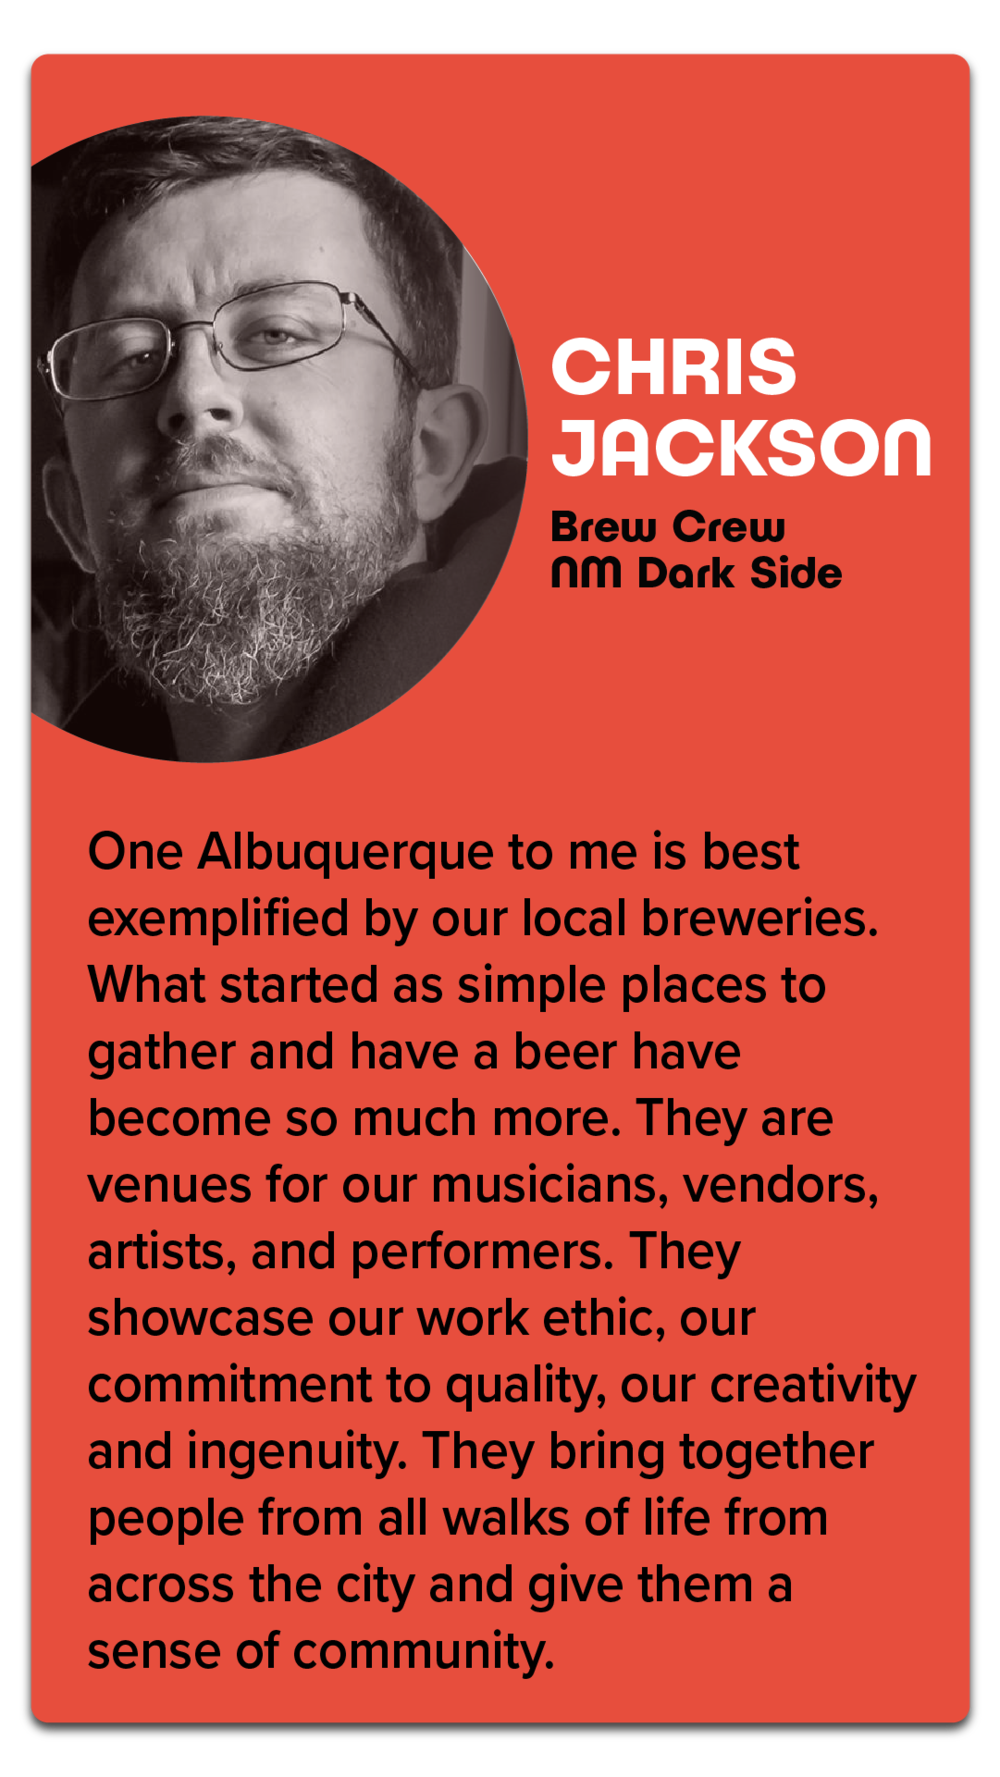 """Chris Jackson, Brew Crew, NM Dark Side  """"One Albuquerque to me is best exemplified by our local breweries. What started as simple places to gather and have a beer have become so much more. They are venues for our musicians, vendors, artists, and performers. They showcase our work ethic, our commitment to quality, our creativity and ingenuity. They bring together people from all walks of life fro across the city and give them a sense of community."""""""